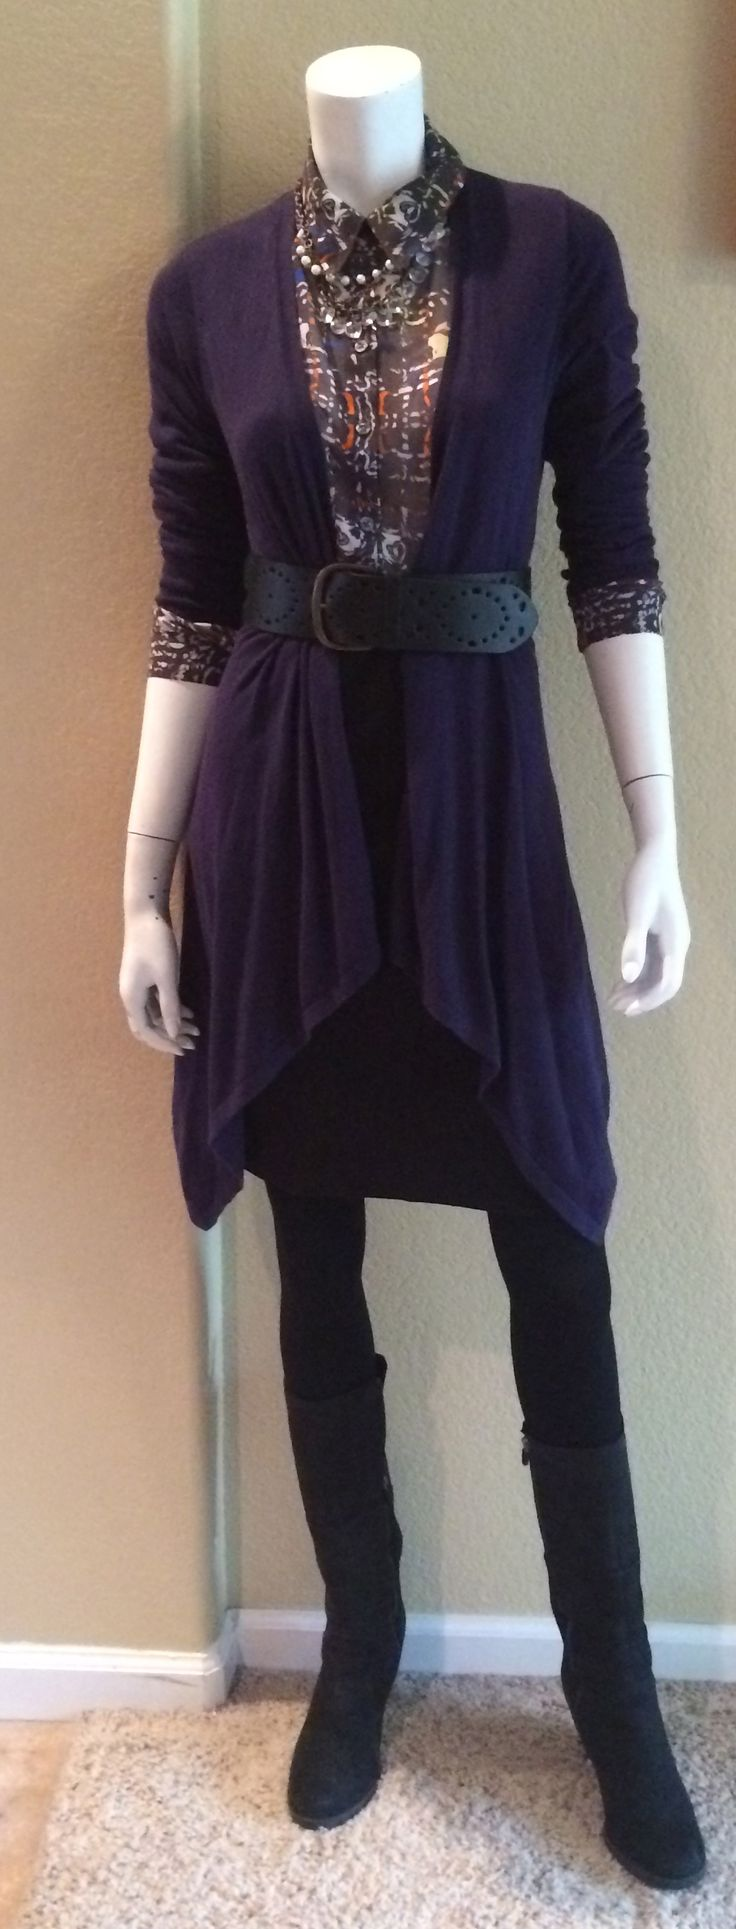 Daily Look: CAbi Fall '14 Ponte Pencil Skirt and Festival Blouse with tights, CAbi vintage sweater and Perforated Belt.